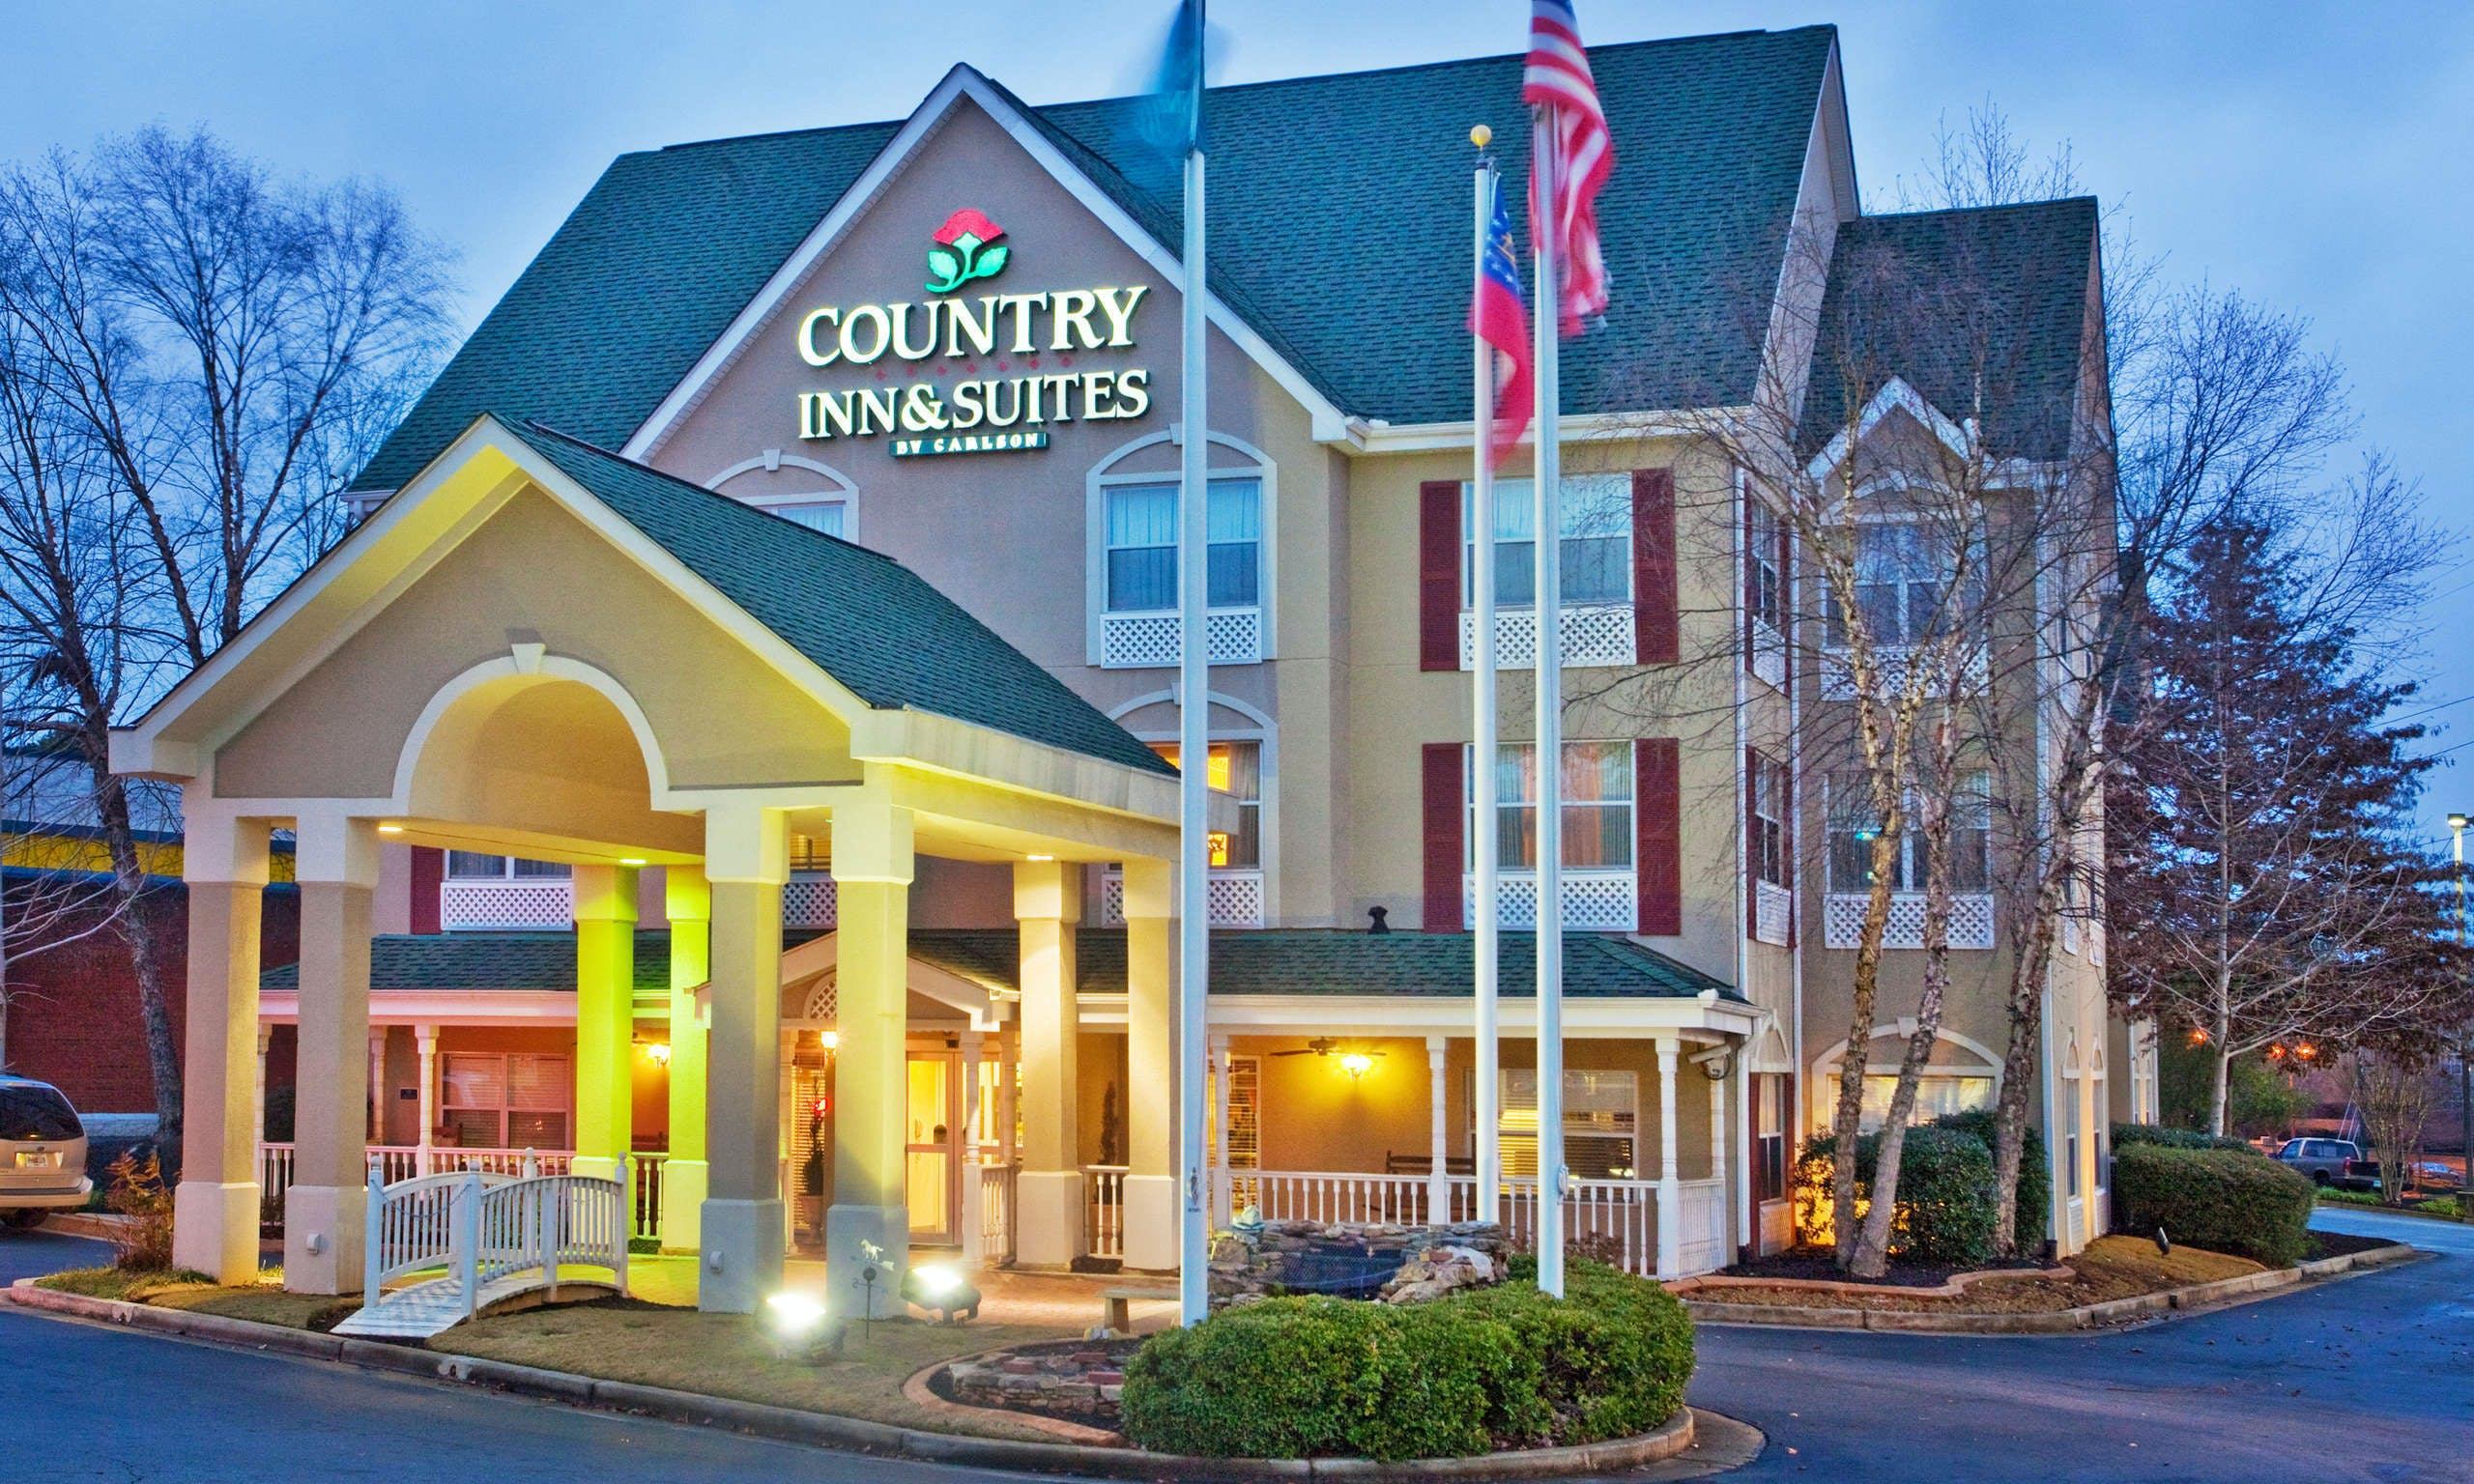 Welcome to our hotel near Gwinnett Medical Center & Infinite Energy Arena